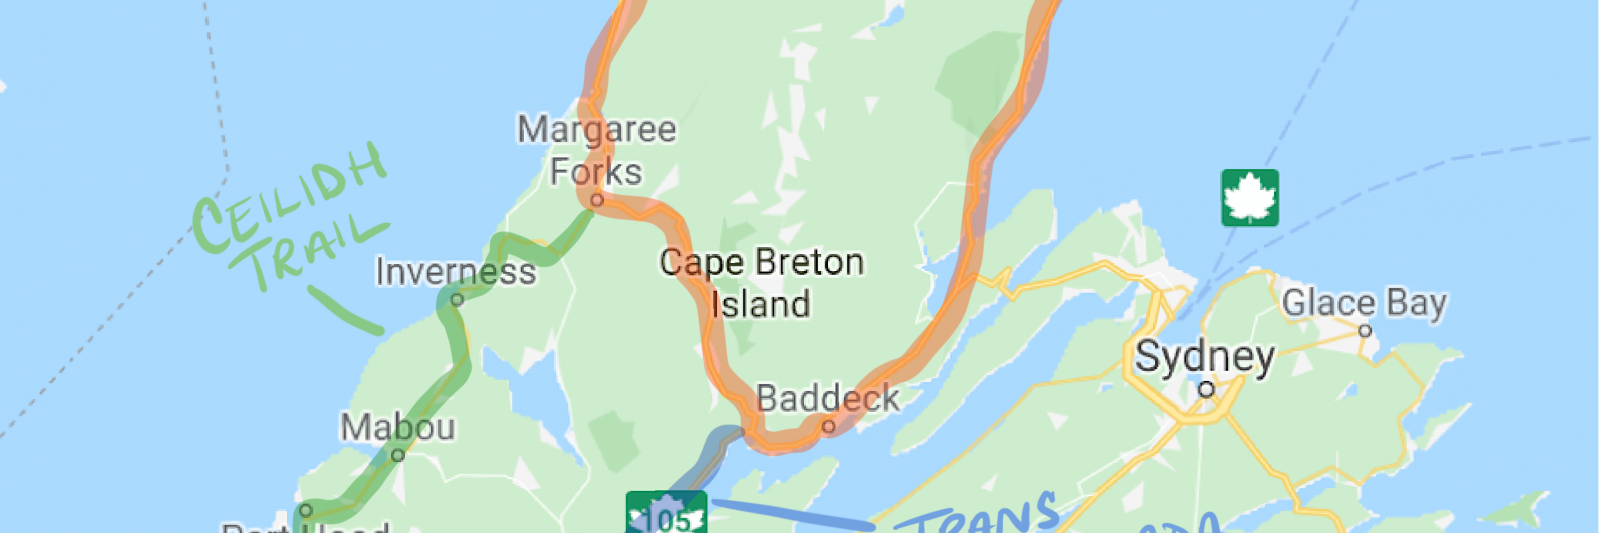 The Way to do the Cabot Trail